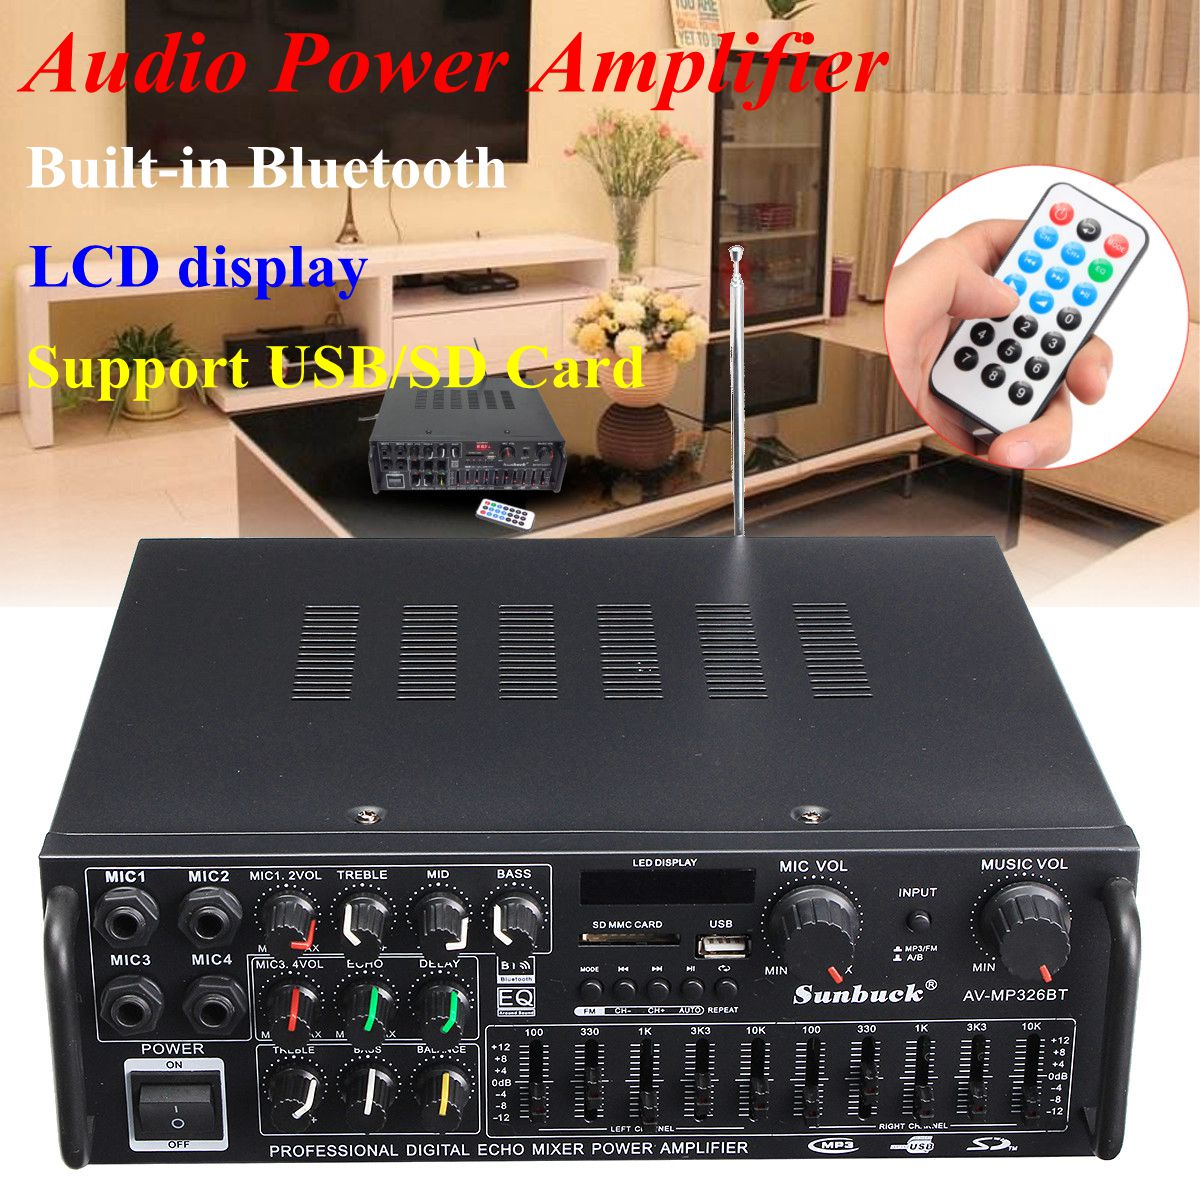 2000W Bluetooth 2.0 Channel Audio HiFi Amplifier Stereo 326BT 12V/220V AV Amp Speaker Support 4 Microphone Reverb Equilibrium eu us 1 in 4 audio signal switcher amplifier preamp hifi for headset speaker compact preamp 4 channel stereo microphone